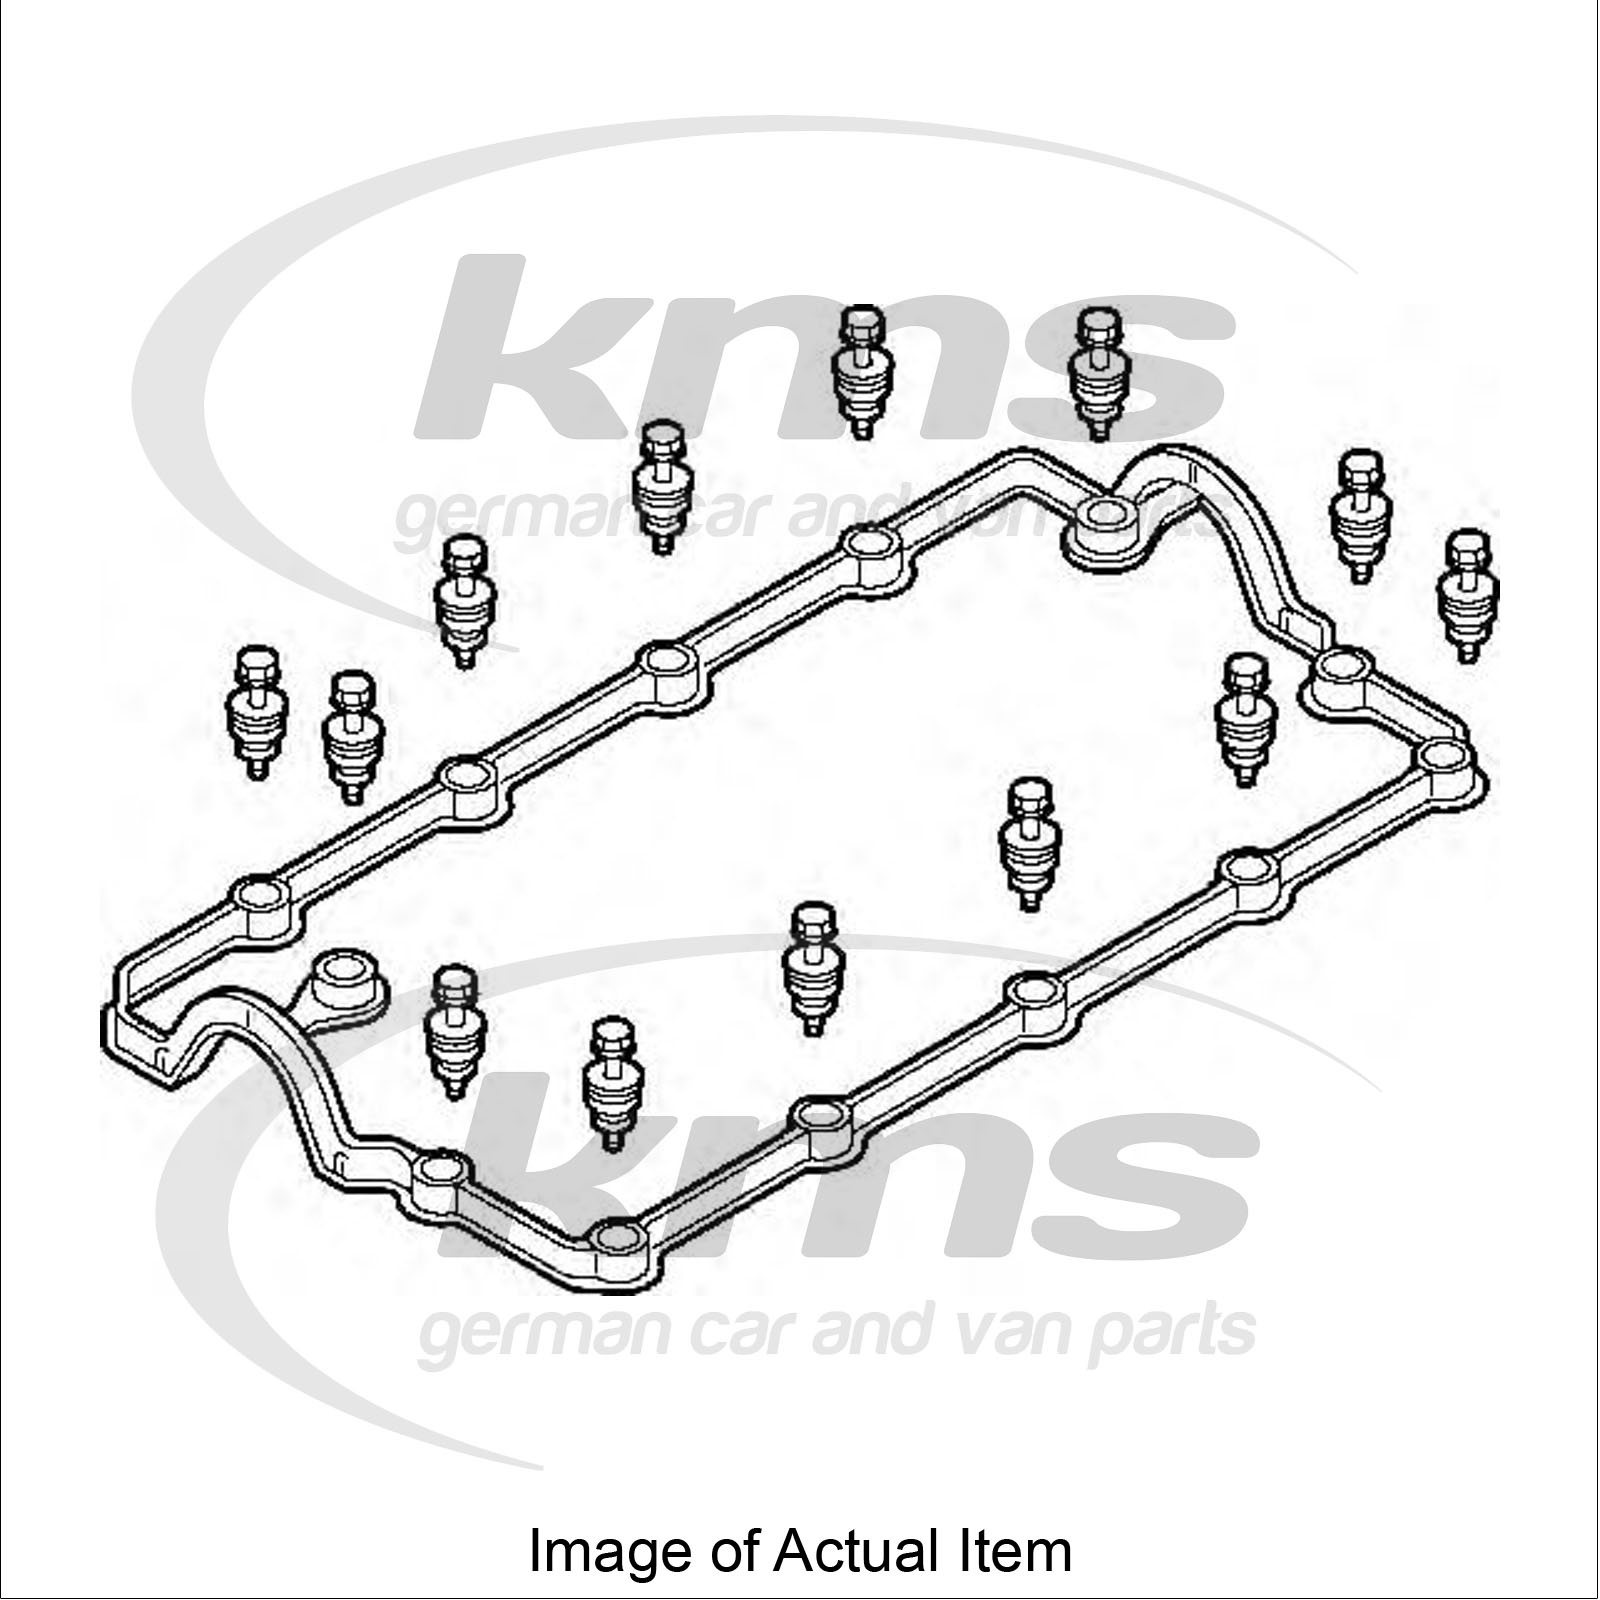 Valve Cover Gasket Vw Golf Mk Iv Estate 1j5 1 9 Tdi